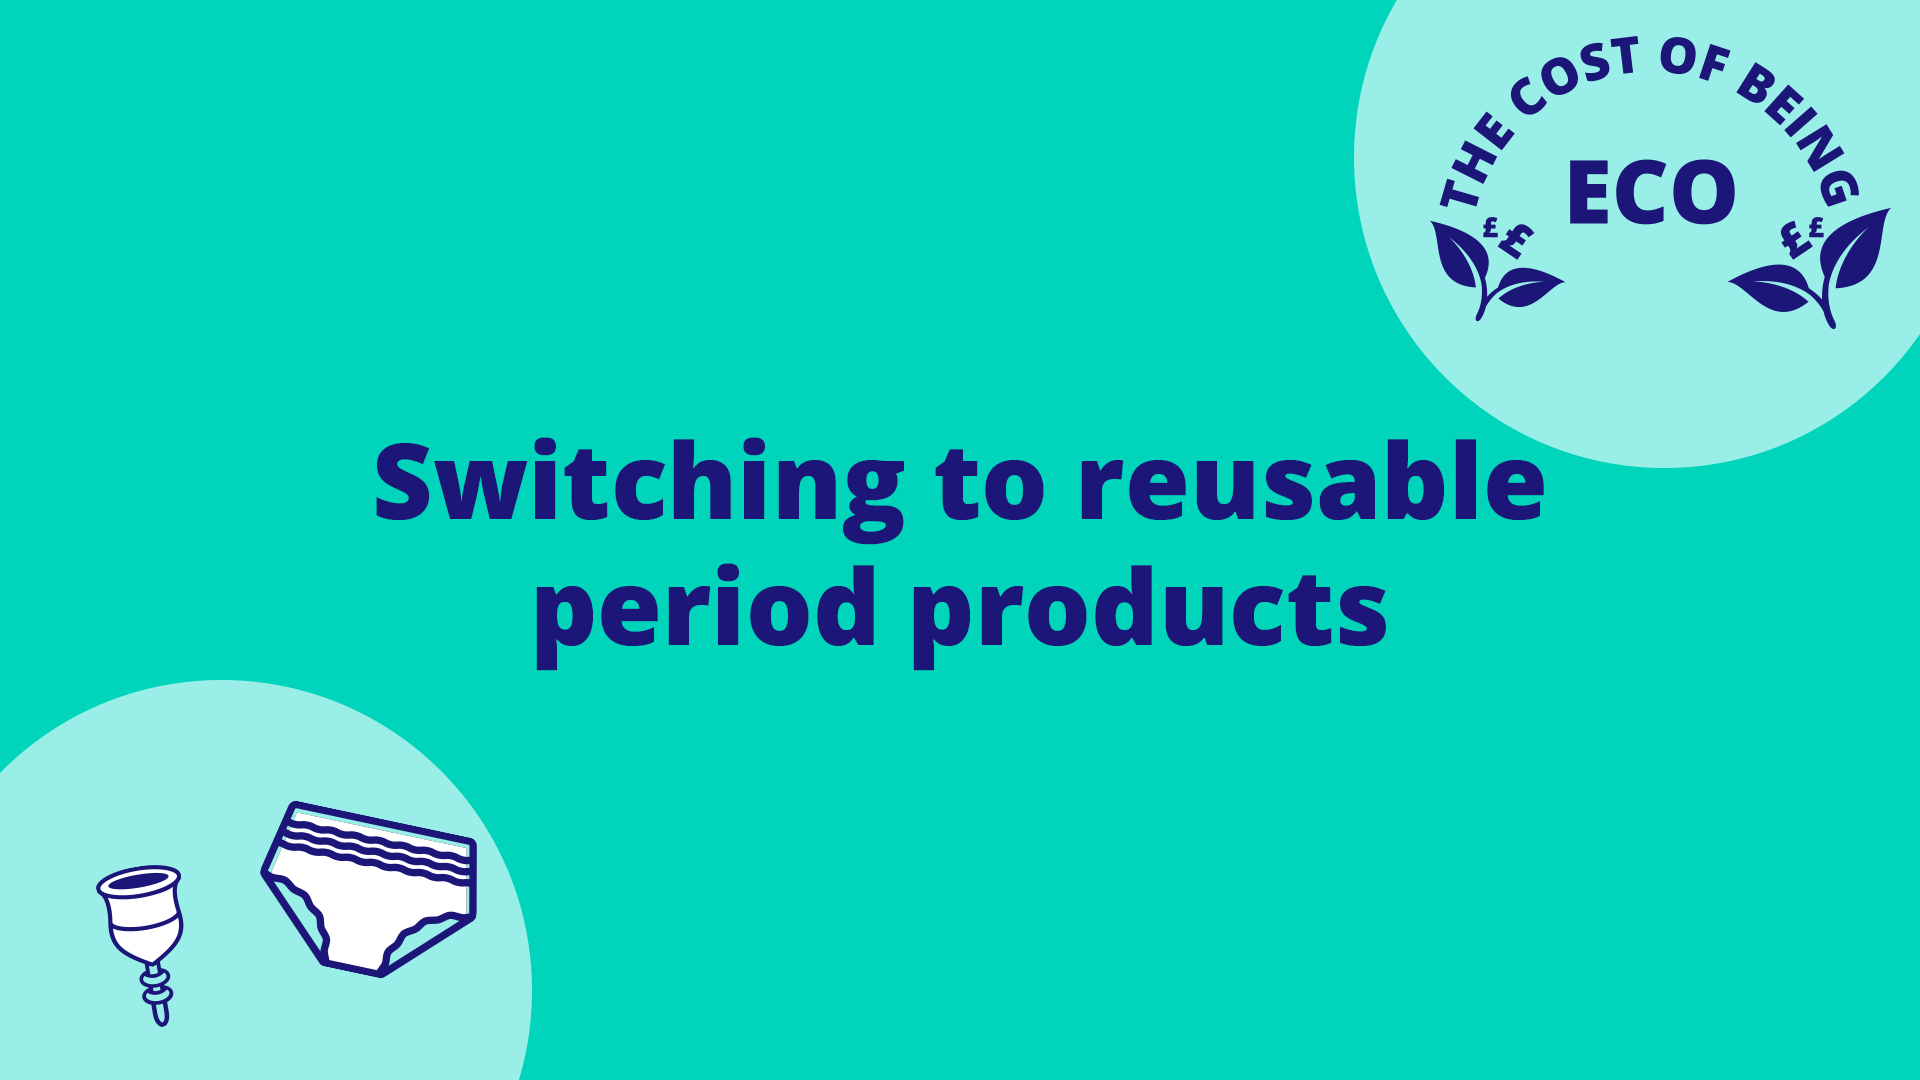 the-cost-of-being-eco-switching-to-reusable-period-products